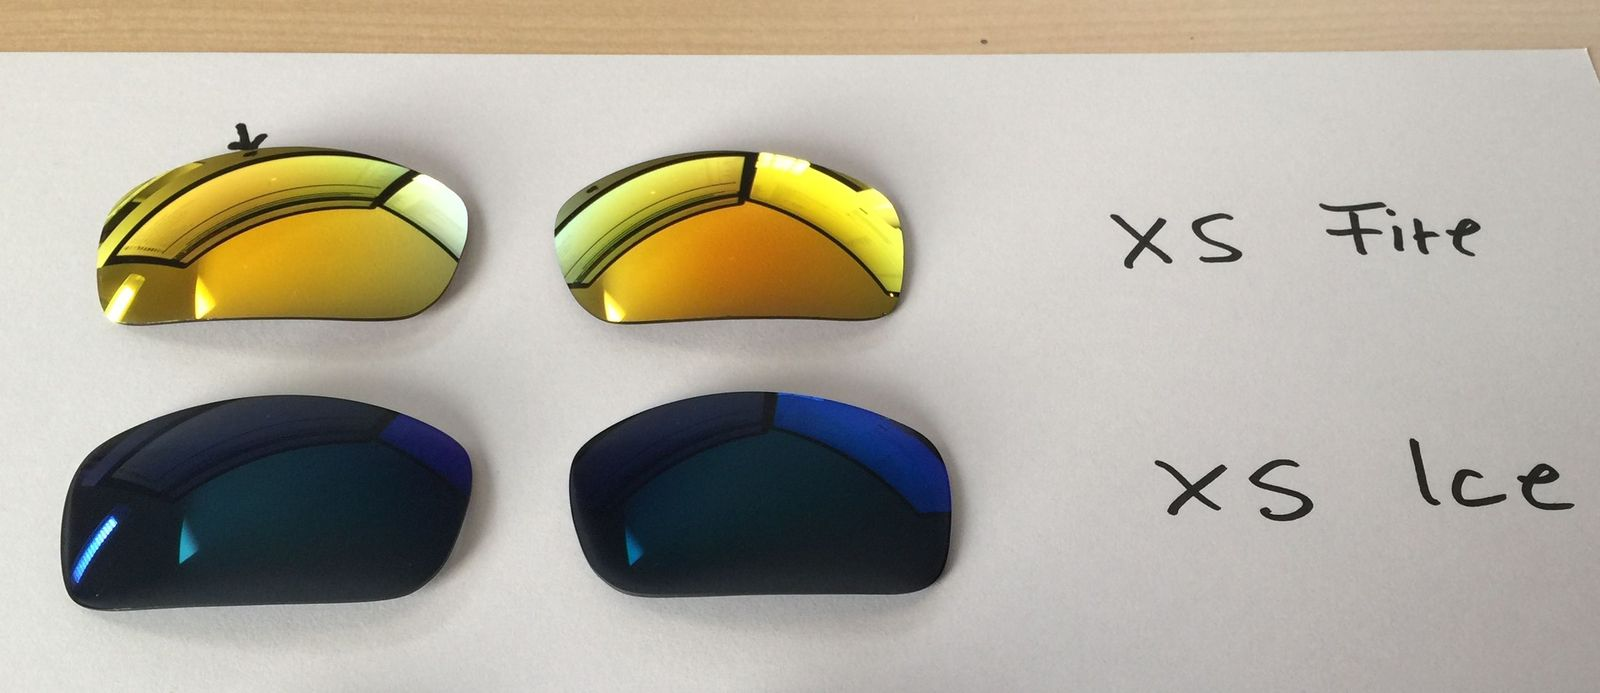 ORIGINAL SPARE LENSES FOR XS: ICE + FIRE - XS2.jpg